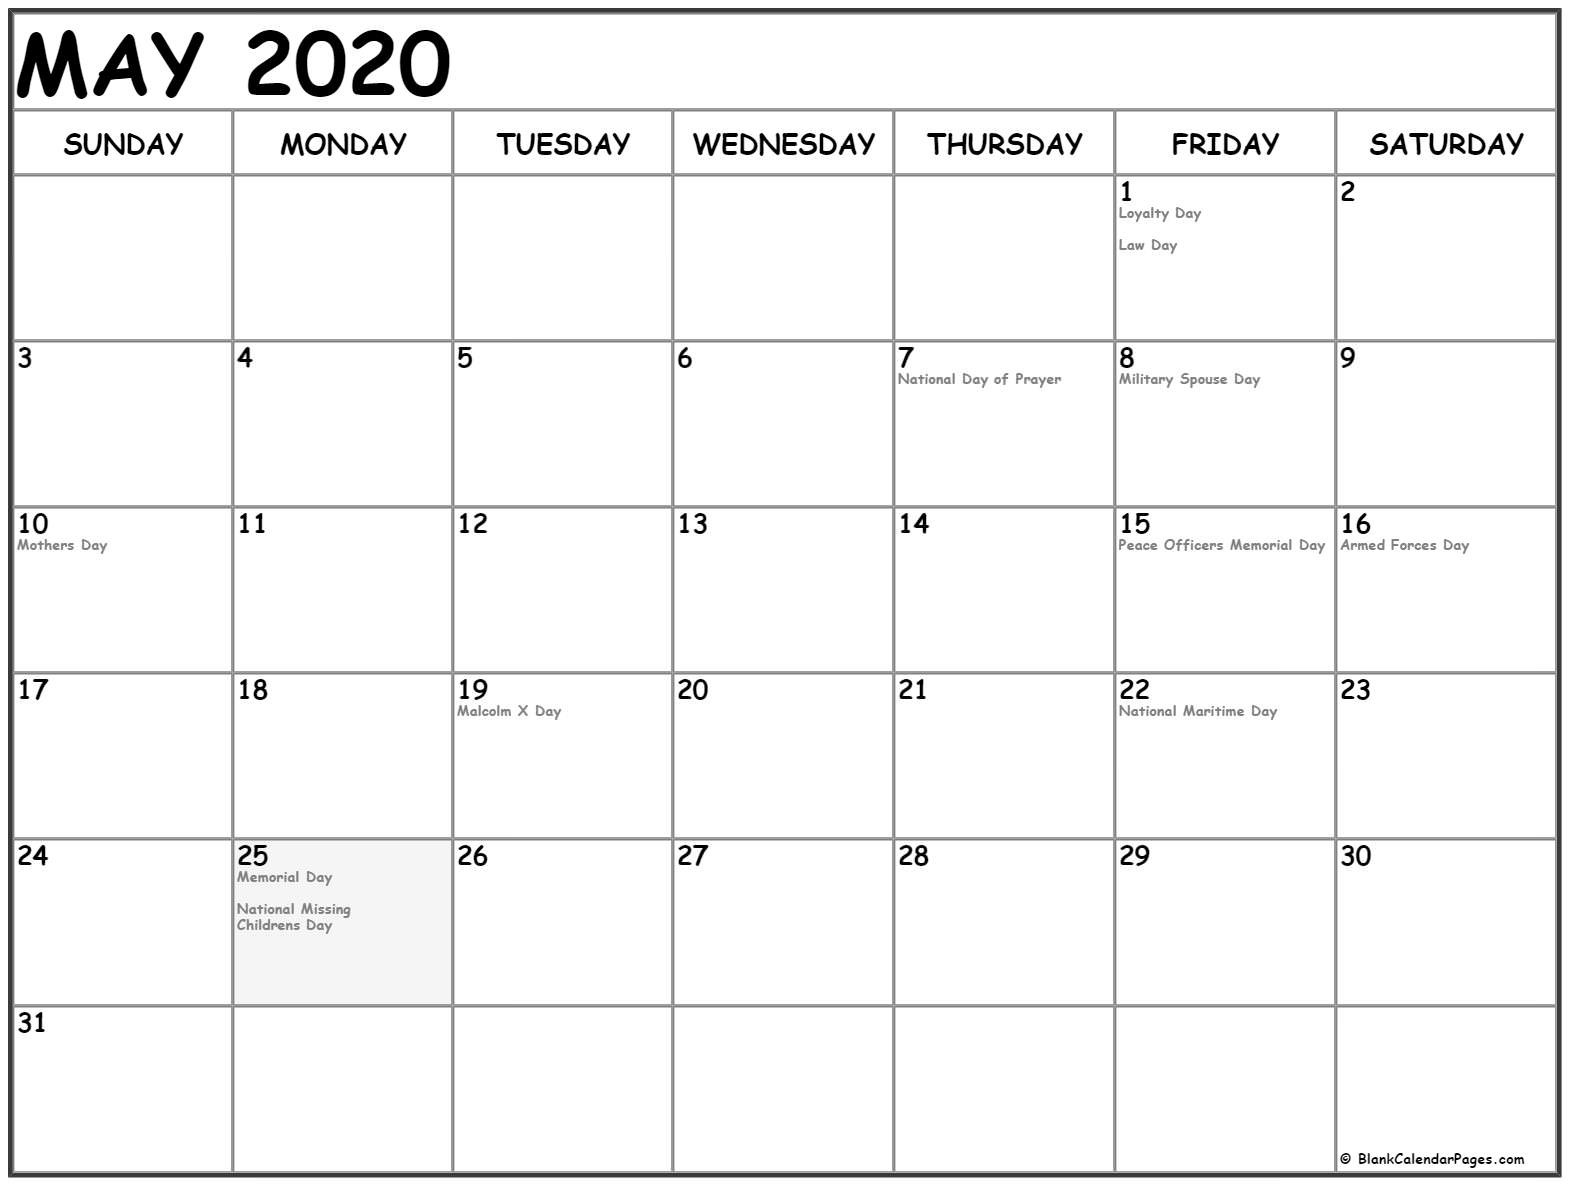 Printable Monthly Calendar 2020 with Holidays May 2020 Calendar